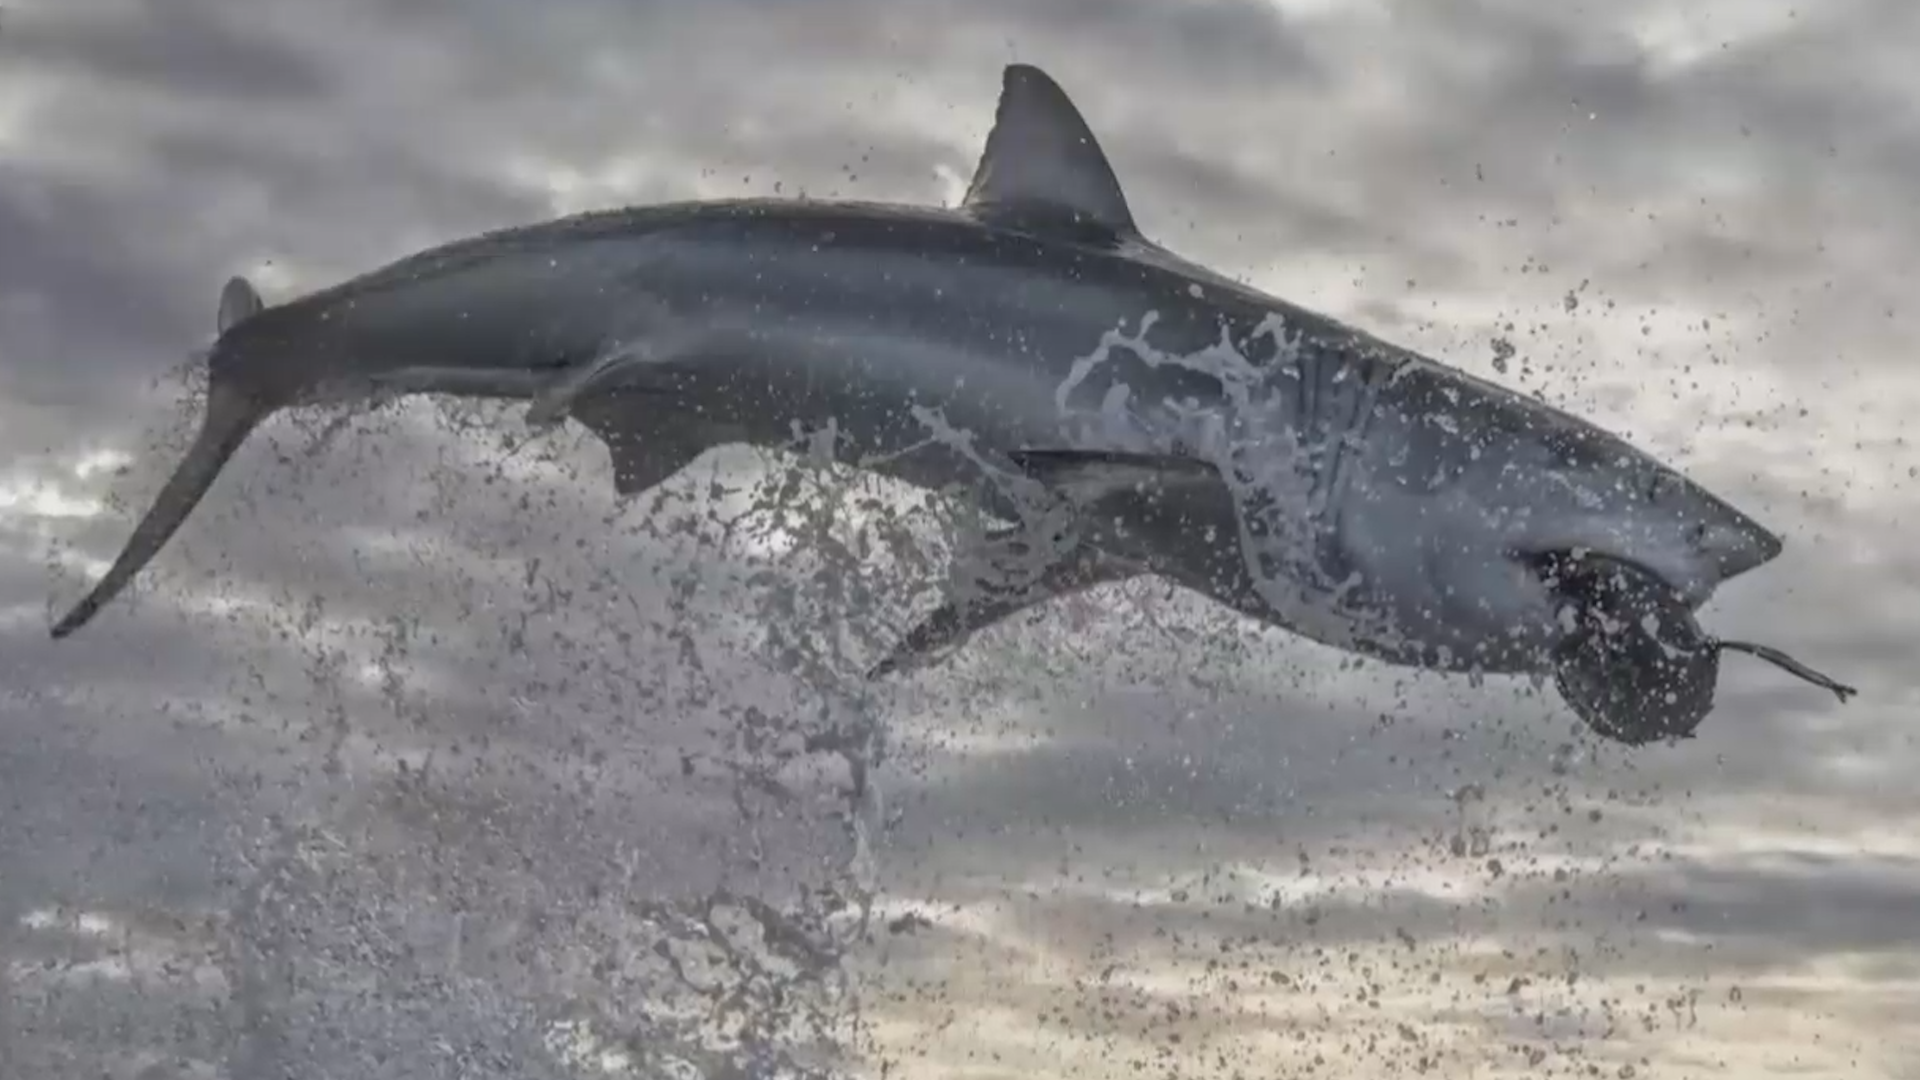 Record-breaking shark breach caught on camera for Shark Week: 'The photo you dream of'